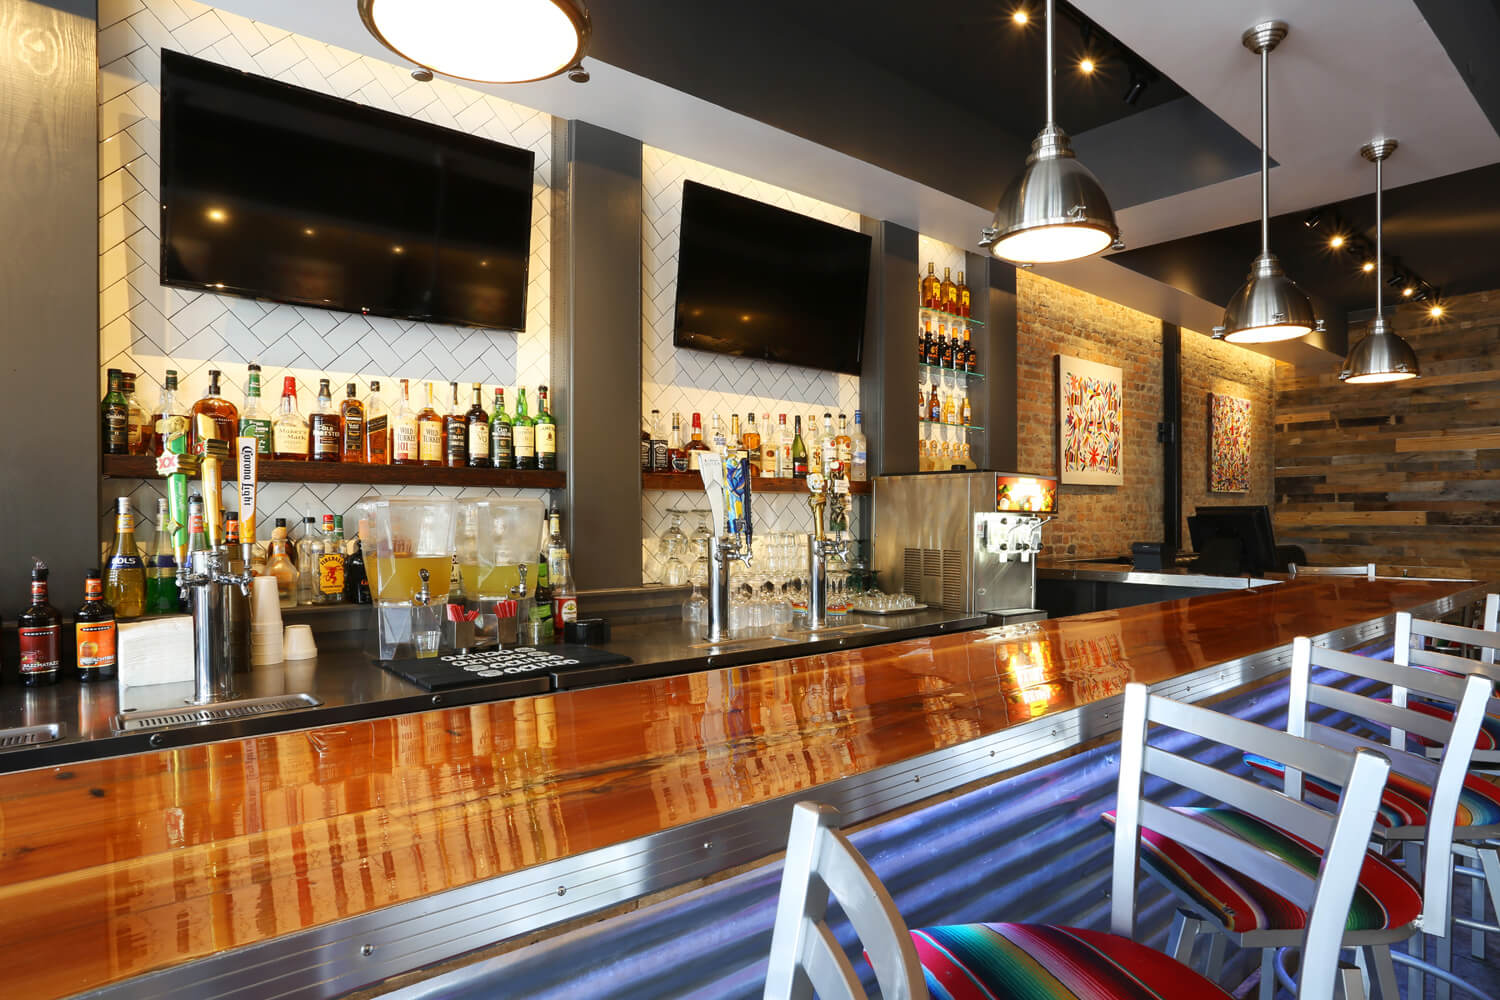 Cuco's Mexican Café Restaurant Designed by Foshee Architecture – View of Bar